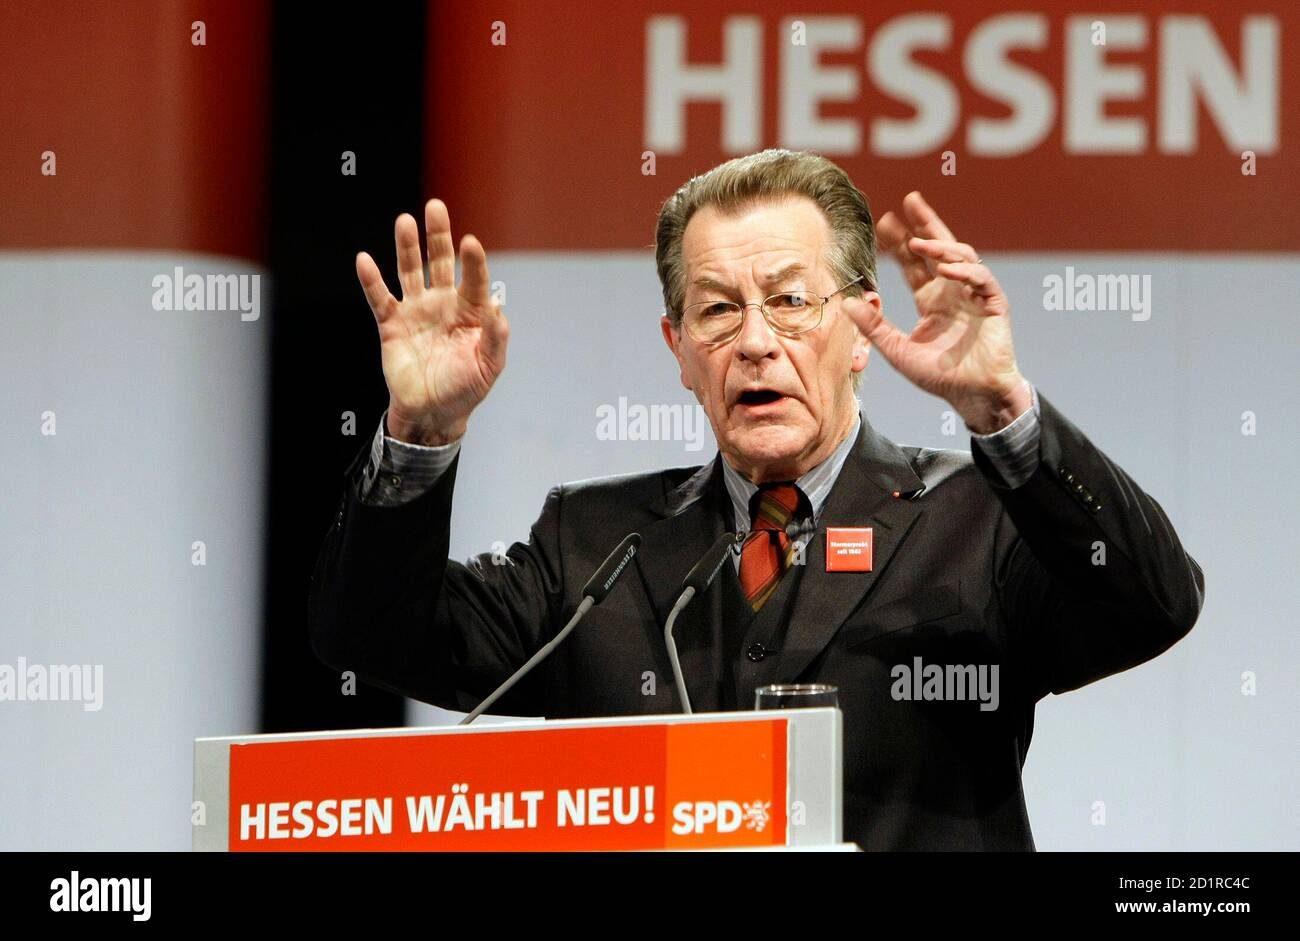 Franz Muentefering, leader of Germany's Social Democratic Party SPD, delivers a speech during an extraordinary party convention in Alsfeld, December 13, 2008.     REUTERS/Thomas Bohlen   (GERMANY) Foto de stock